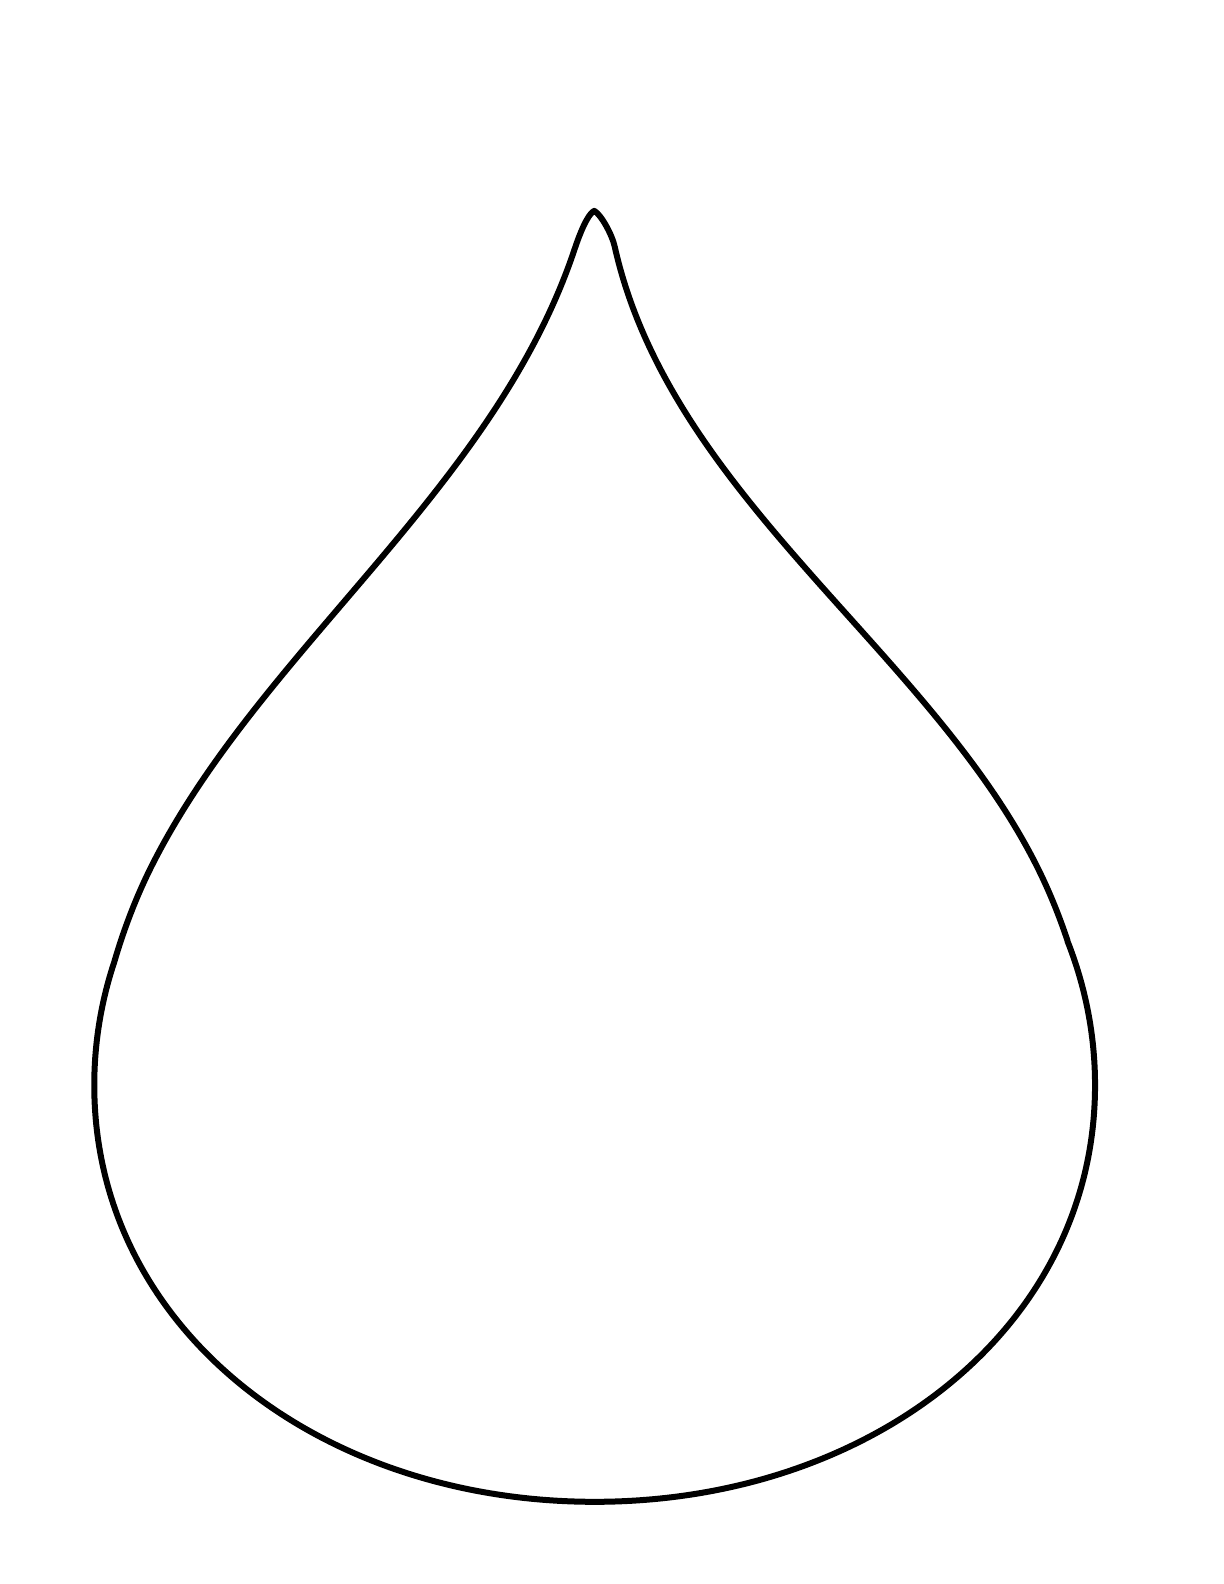 Small raindrop pattern. Use the printable outline for crafts